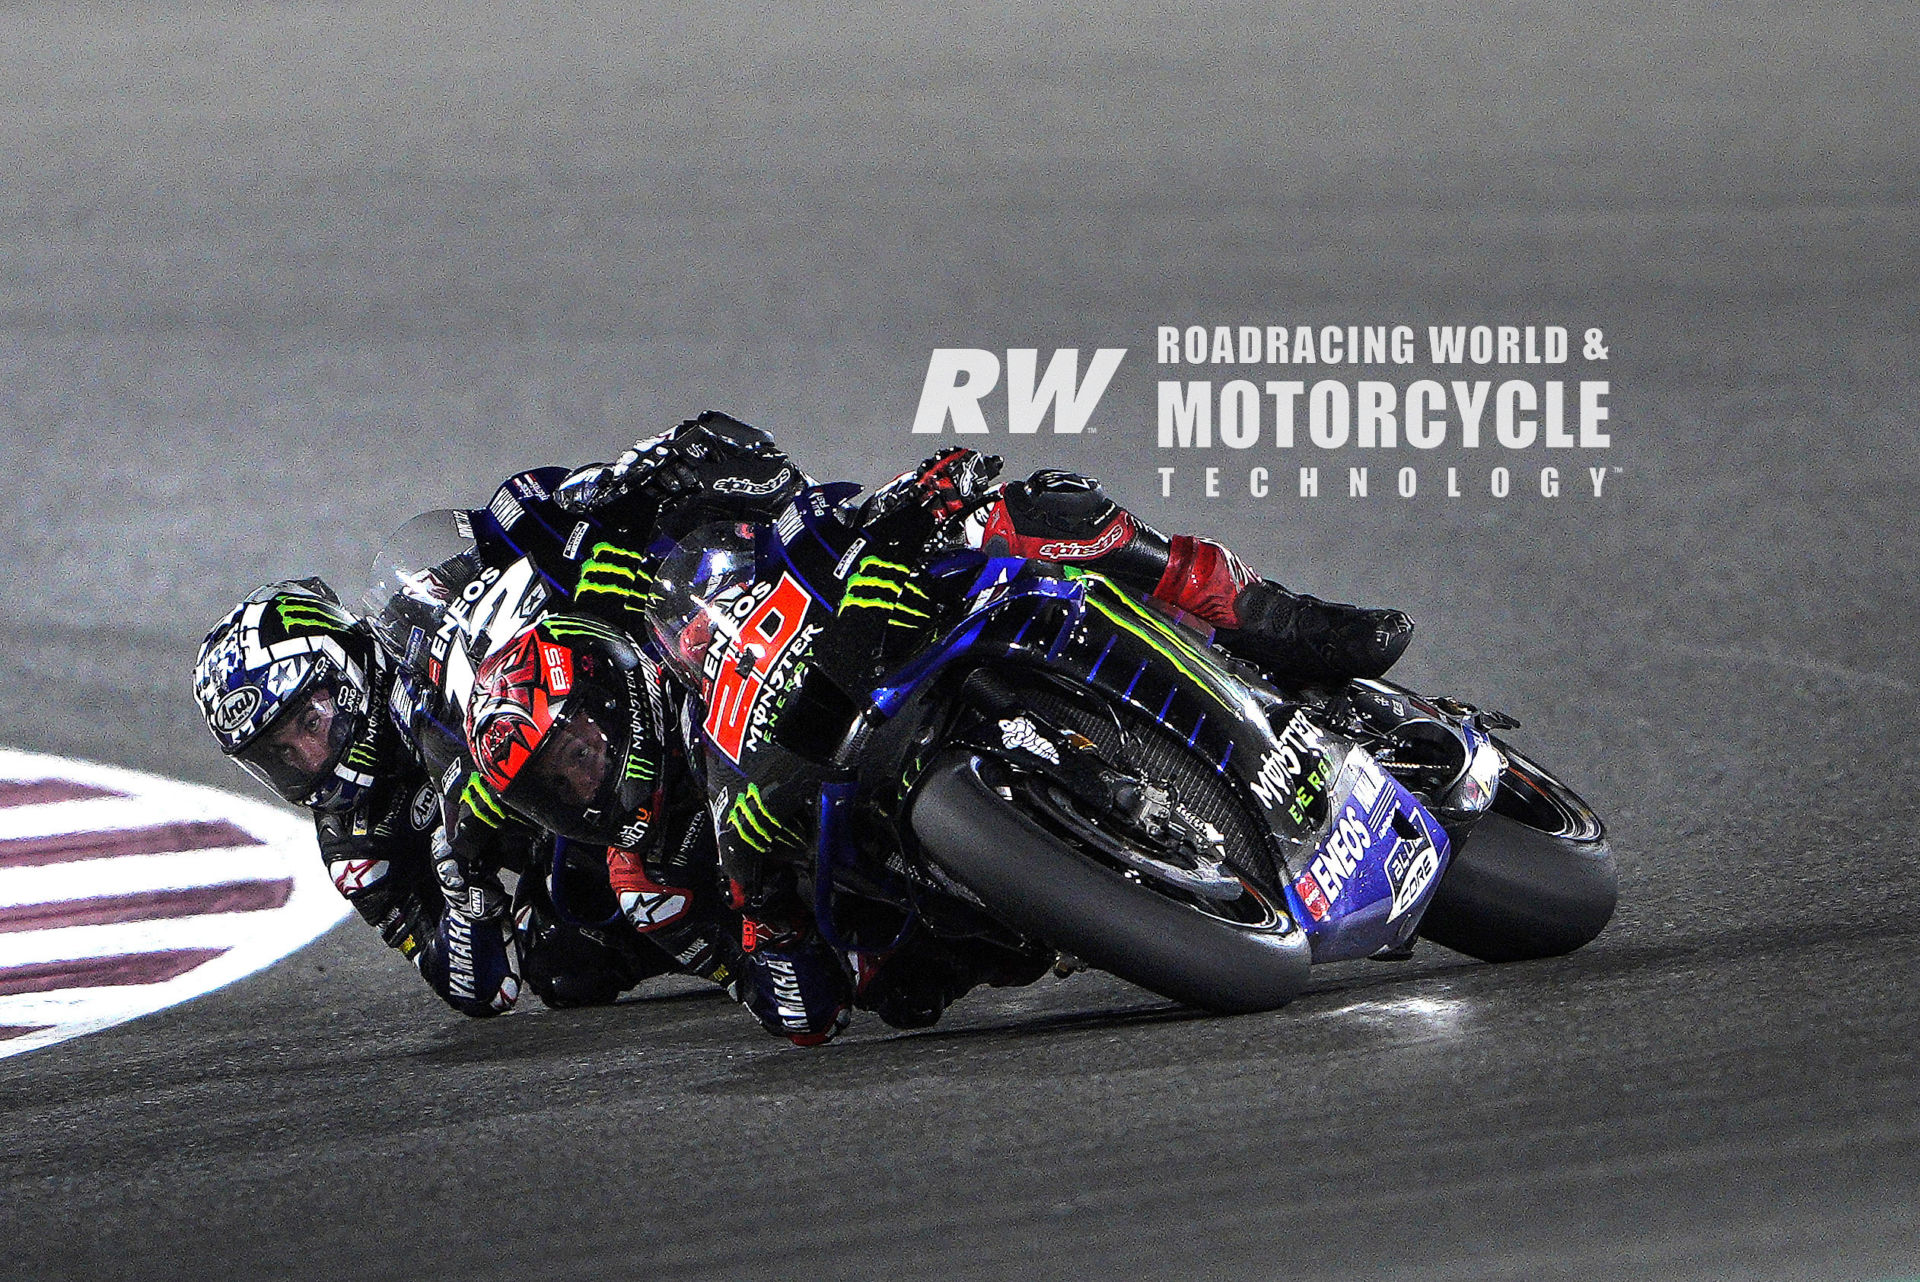 Maverick Viñales (12) and Fabio Quartararo (20) each took a win and a fifth in the opening two MotoGP Grand Prix races of 2021. This may be the first year that Yamaha is a legitimate contender since Jorge Lorenzo won the company's last World Championship in 2015. Photo by DPPI Media.